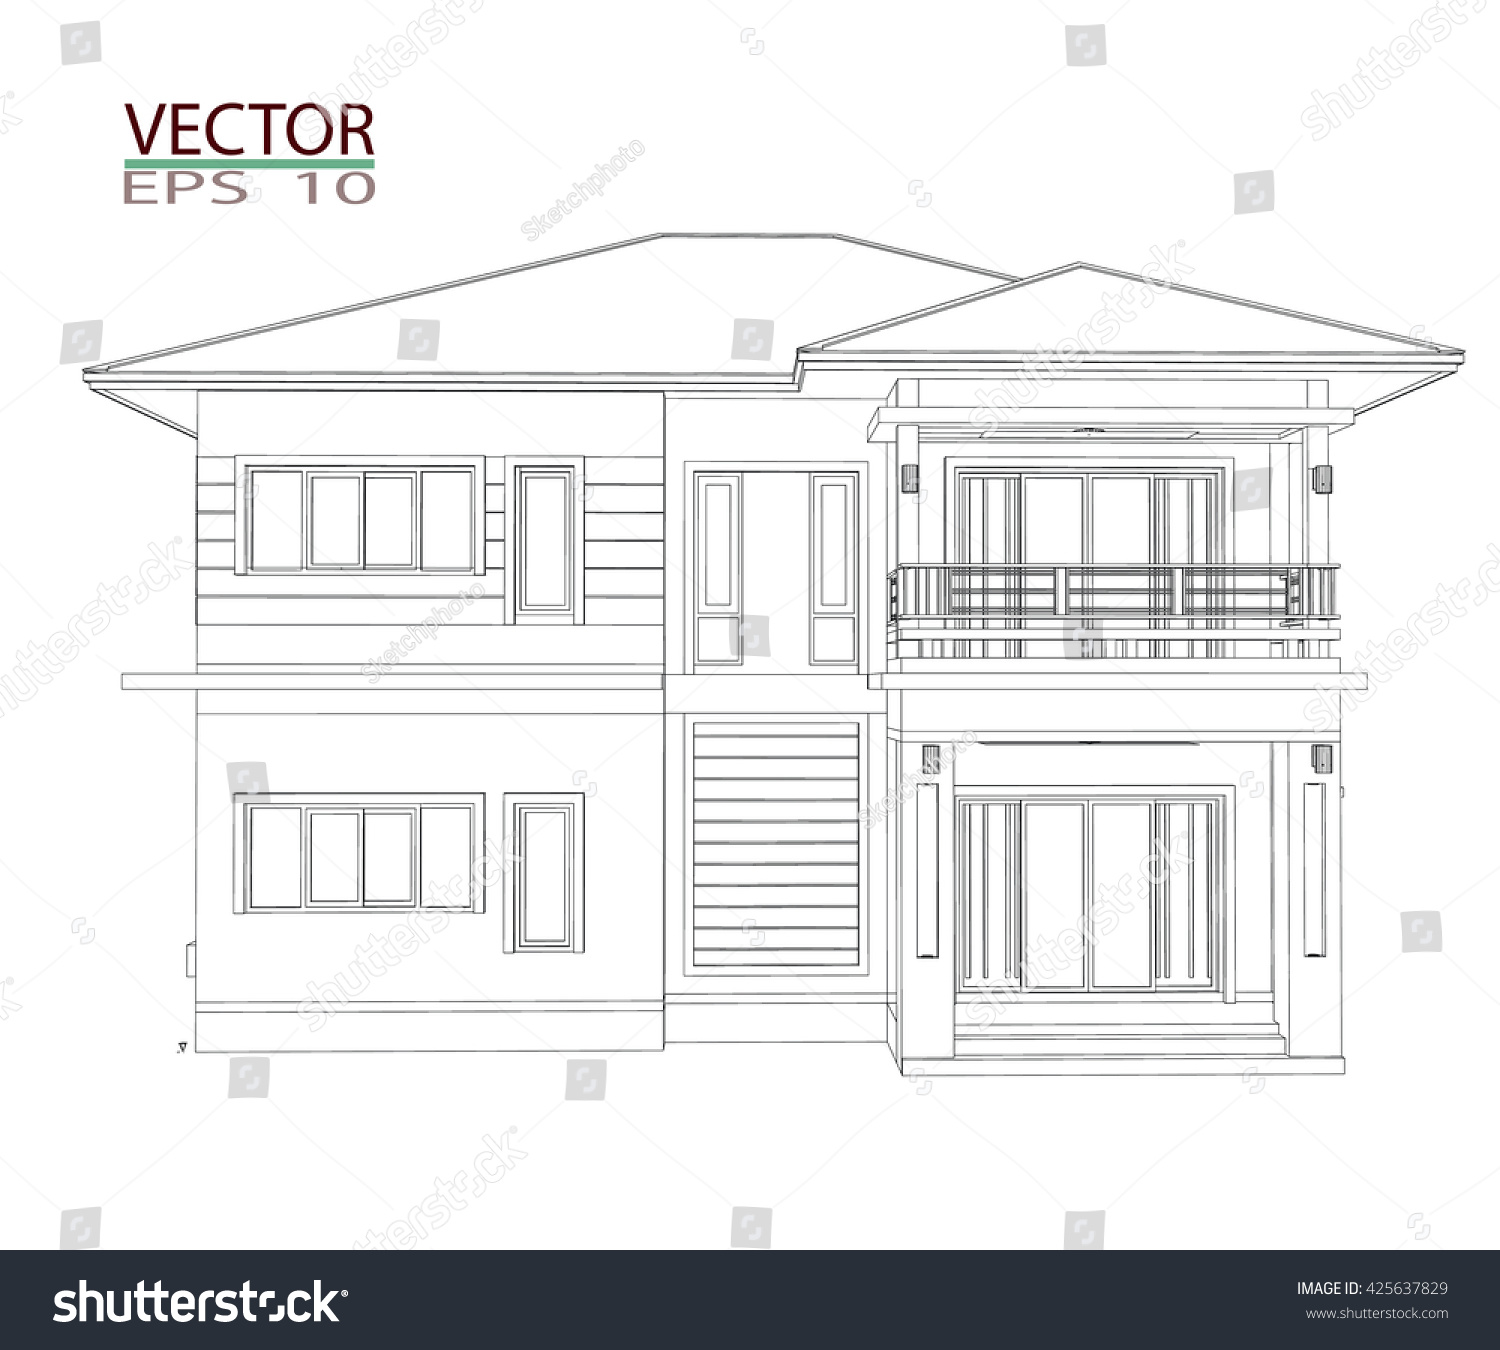 Drawings 3 D Home Design Construction Stock Photo (Photo, Vector ...